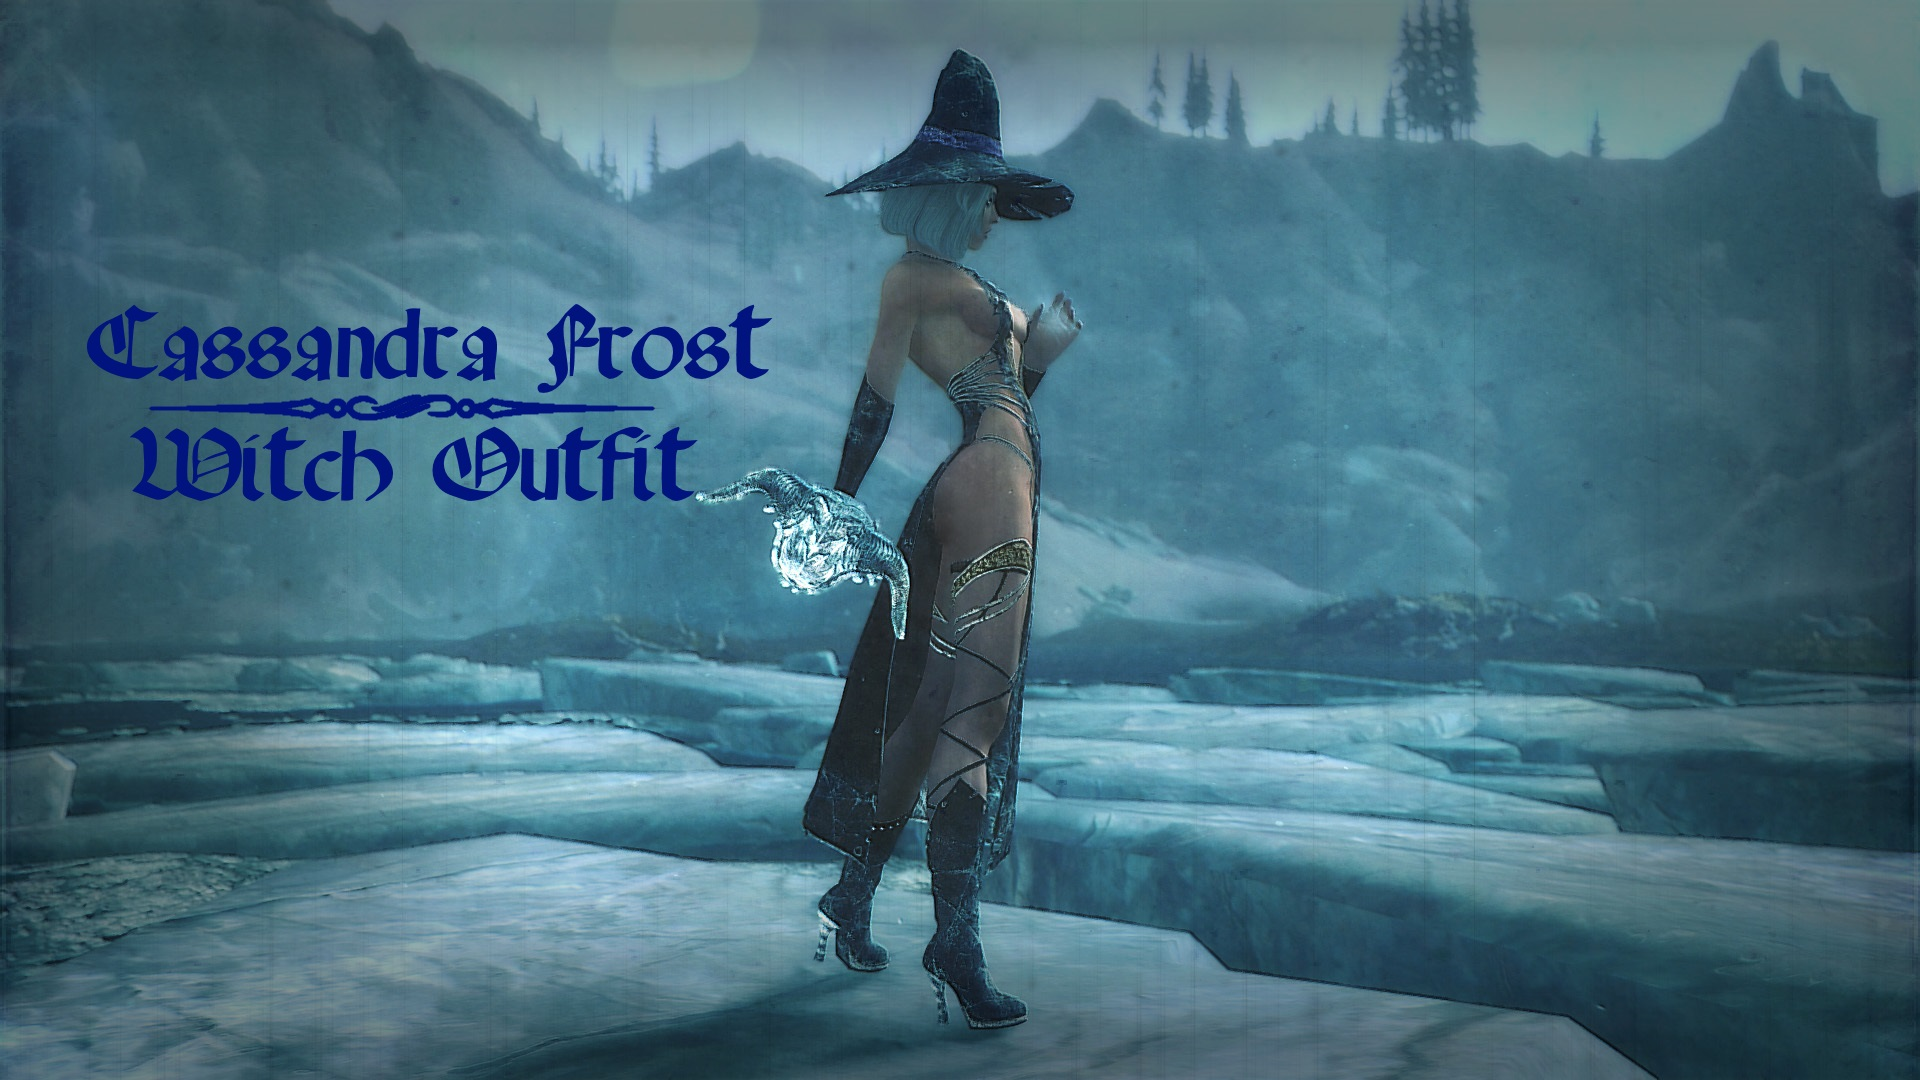 Cassandra_Frost_Witch_Outfit.jpg